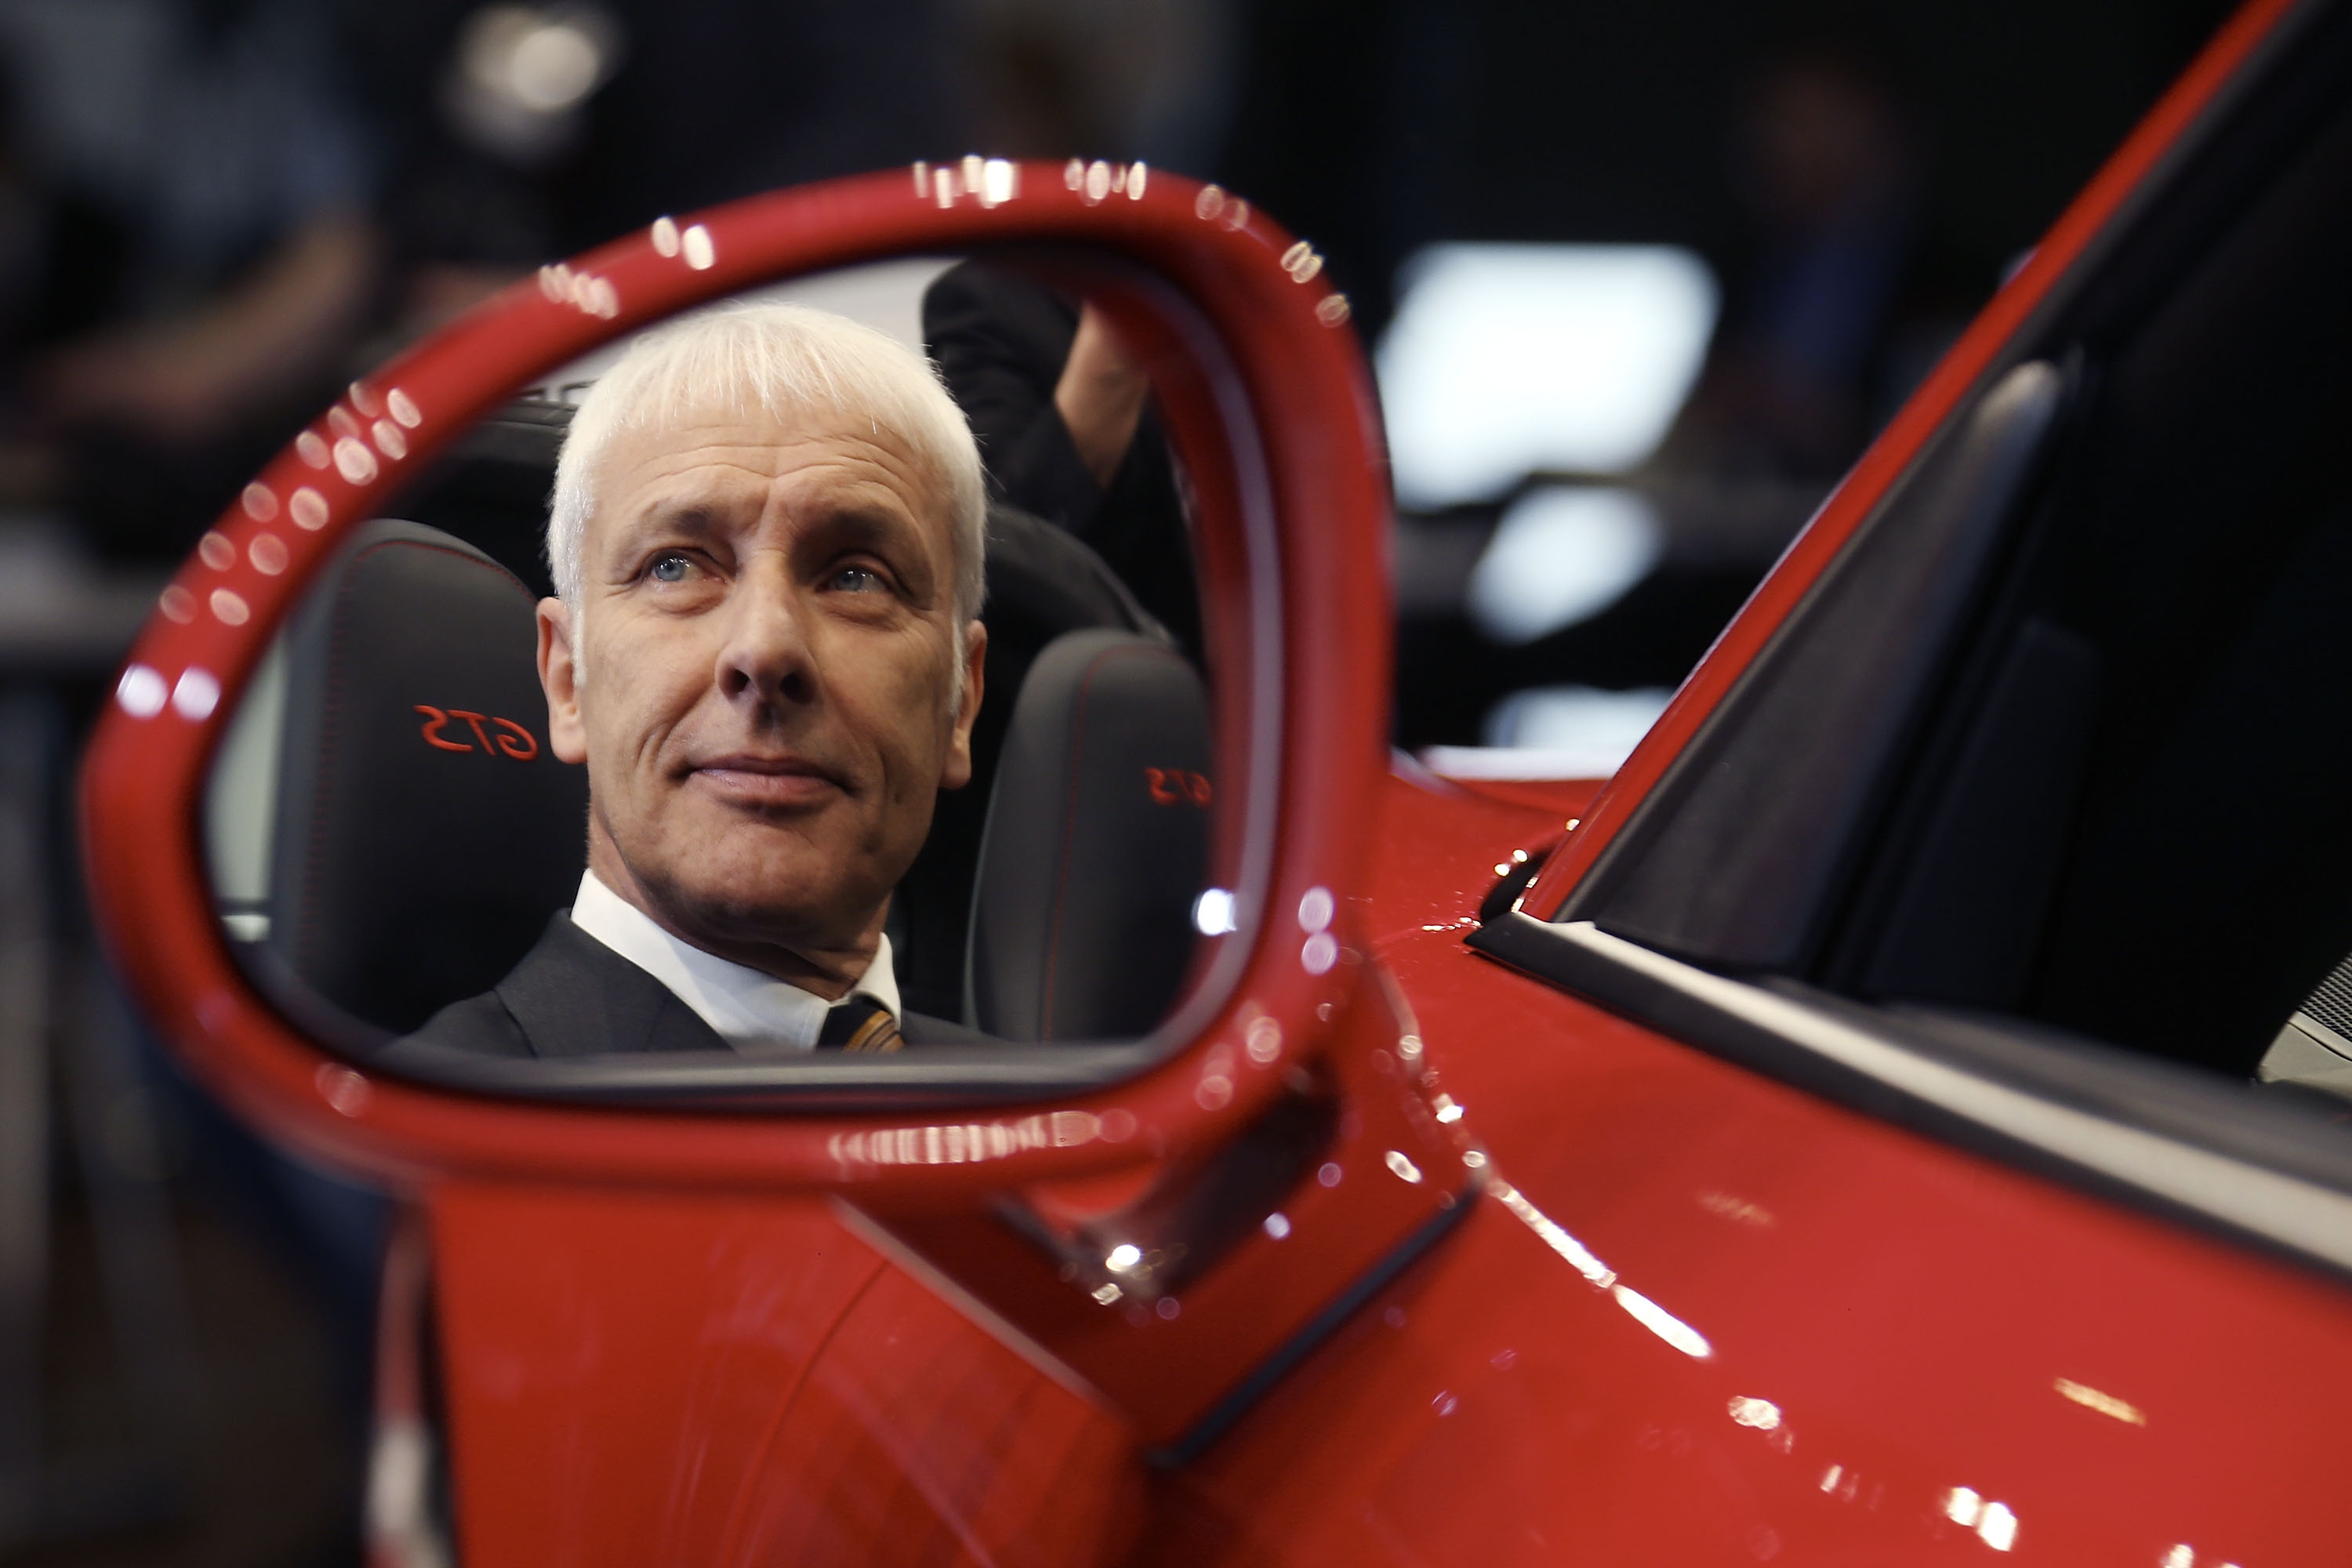 Matthias Mueller, CEO of Porsche AG poses in a Porsche Targa 4 GTS at the Porsche AG annual press conference in Stuttgart, Germany, on March 13, 2015.